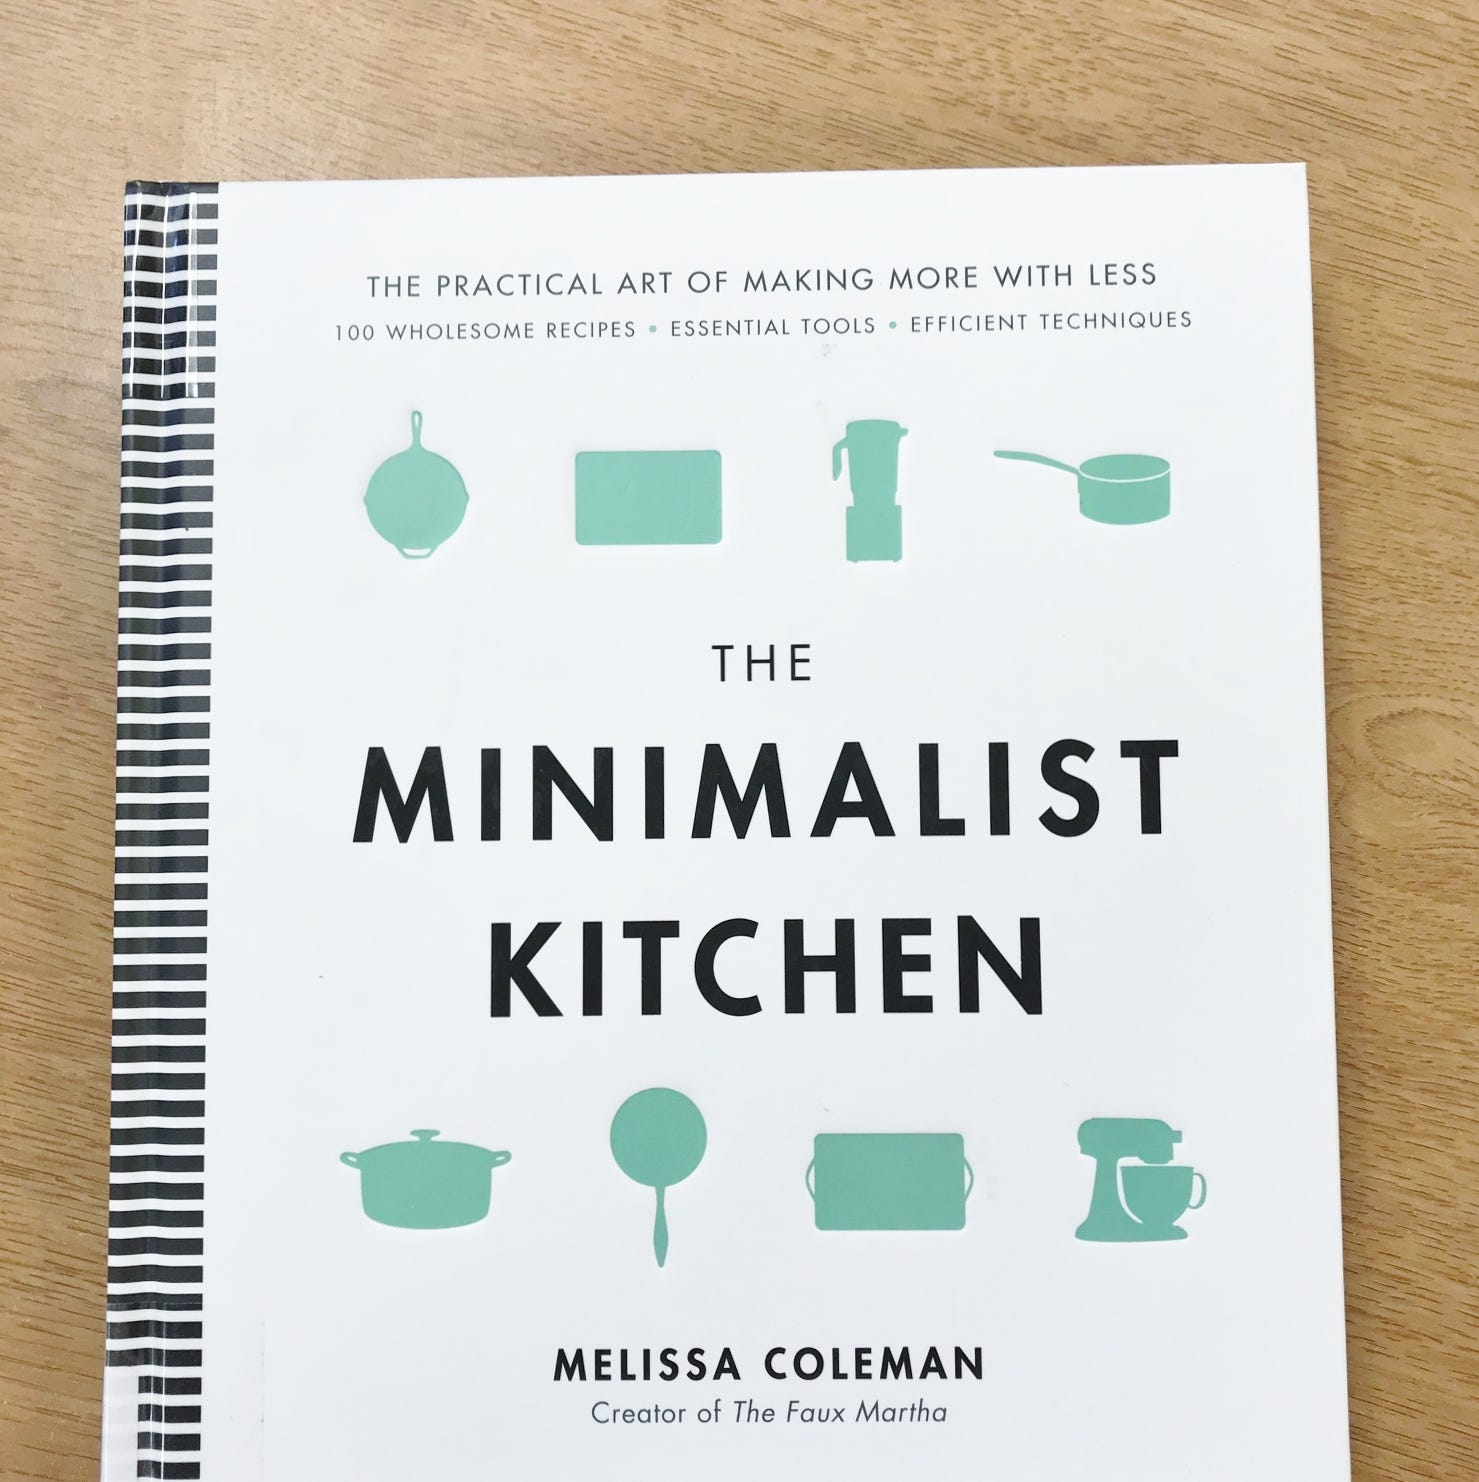 A minimalist kitchen is easy to achieve